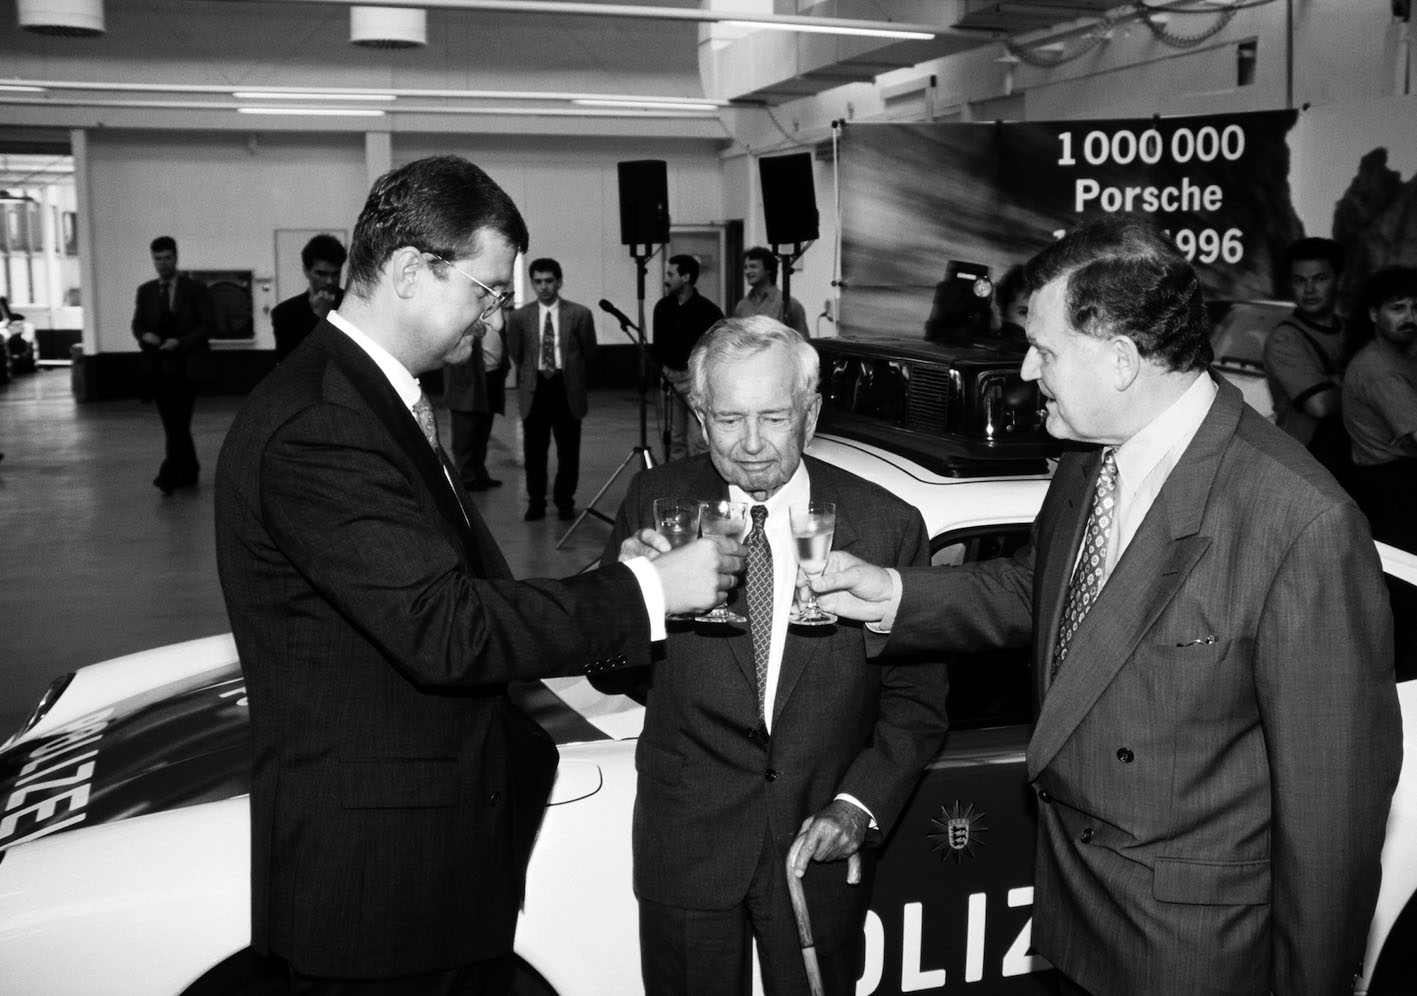 ENGLISH – SPECIAL TAYCAN. The 10 Porsche bosses